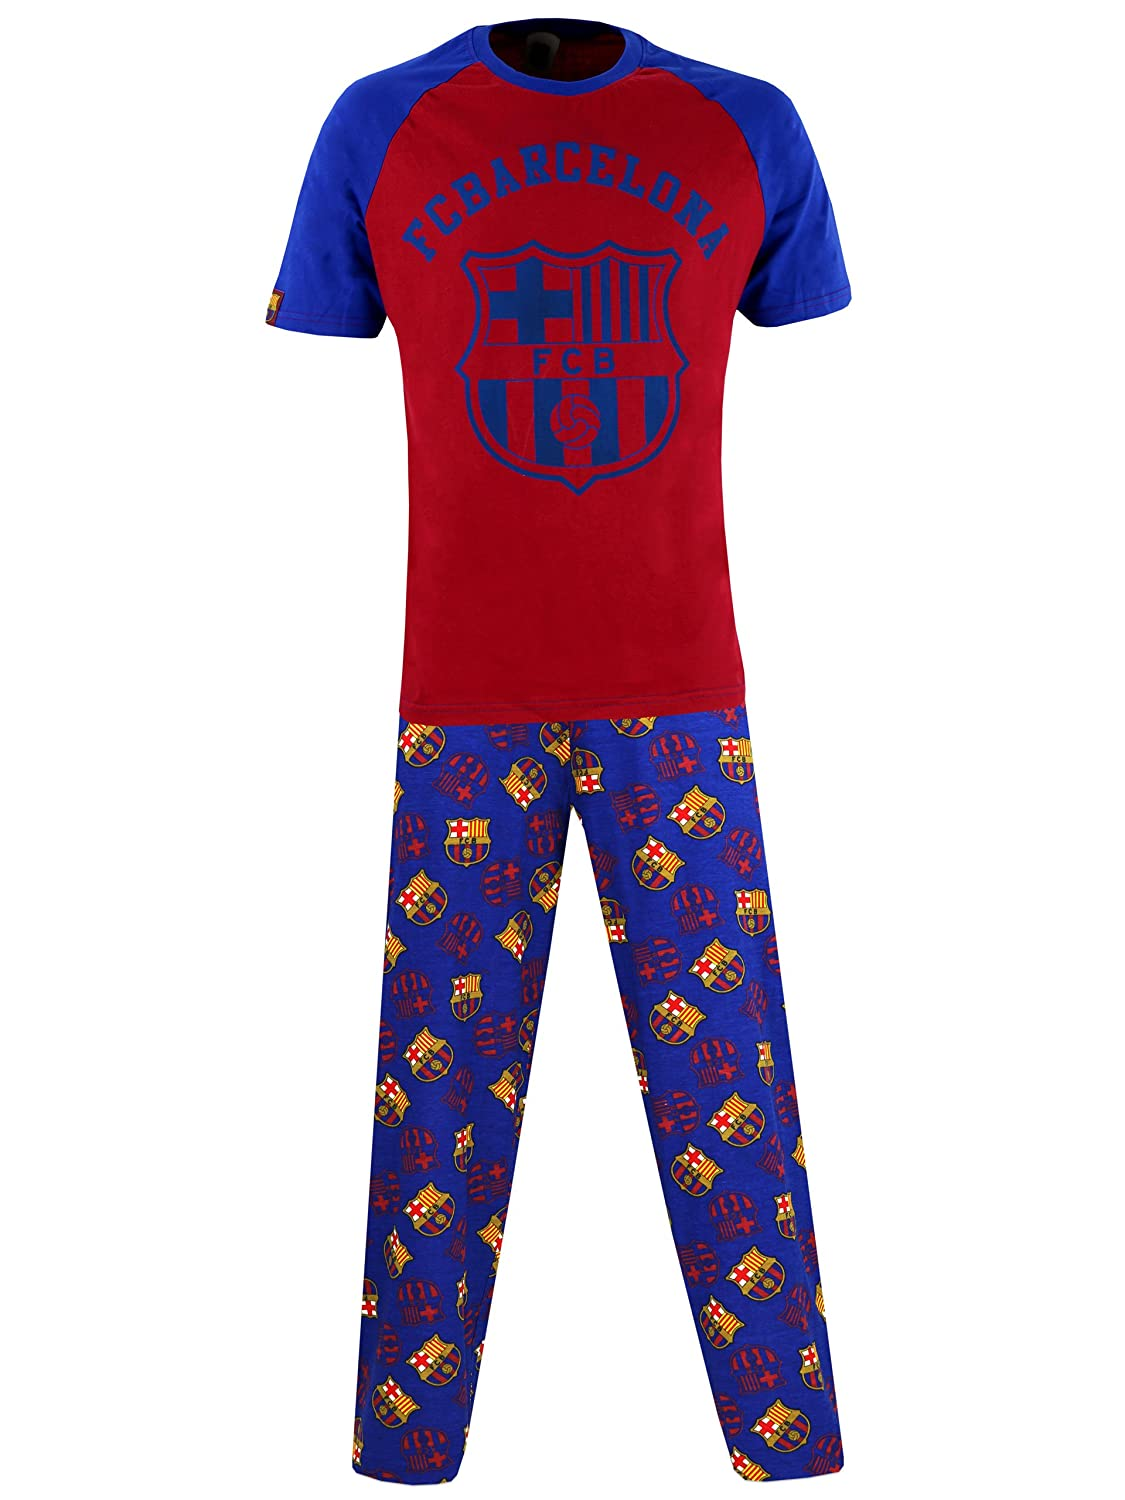 Barcelona F.C. Barcelona Football Club Mens Pyjamas